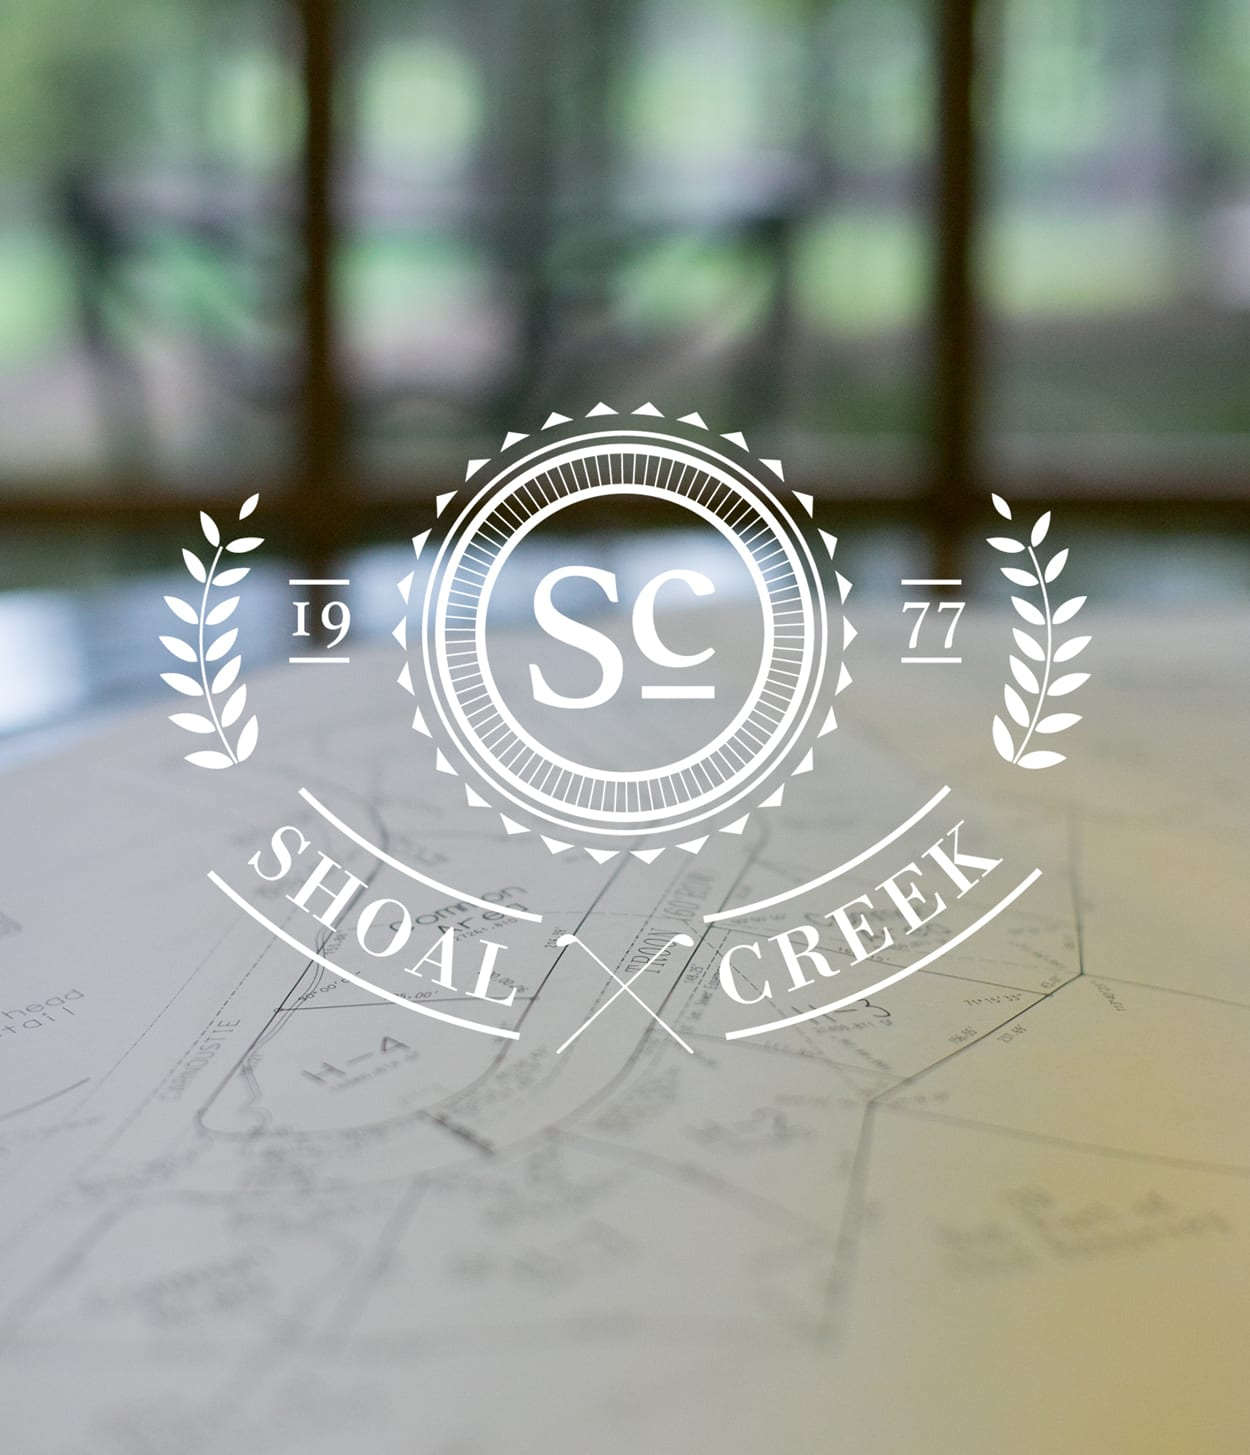 About Shoal Creek